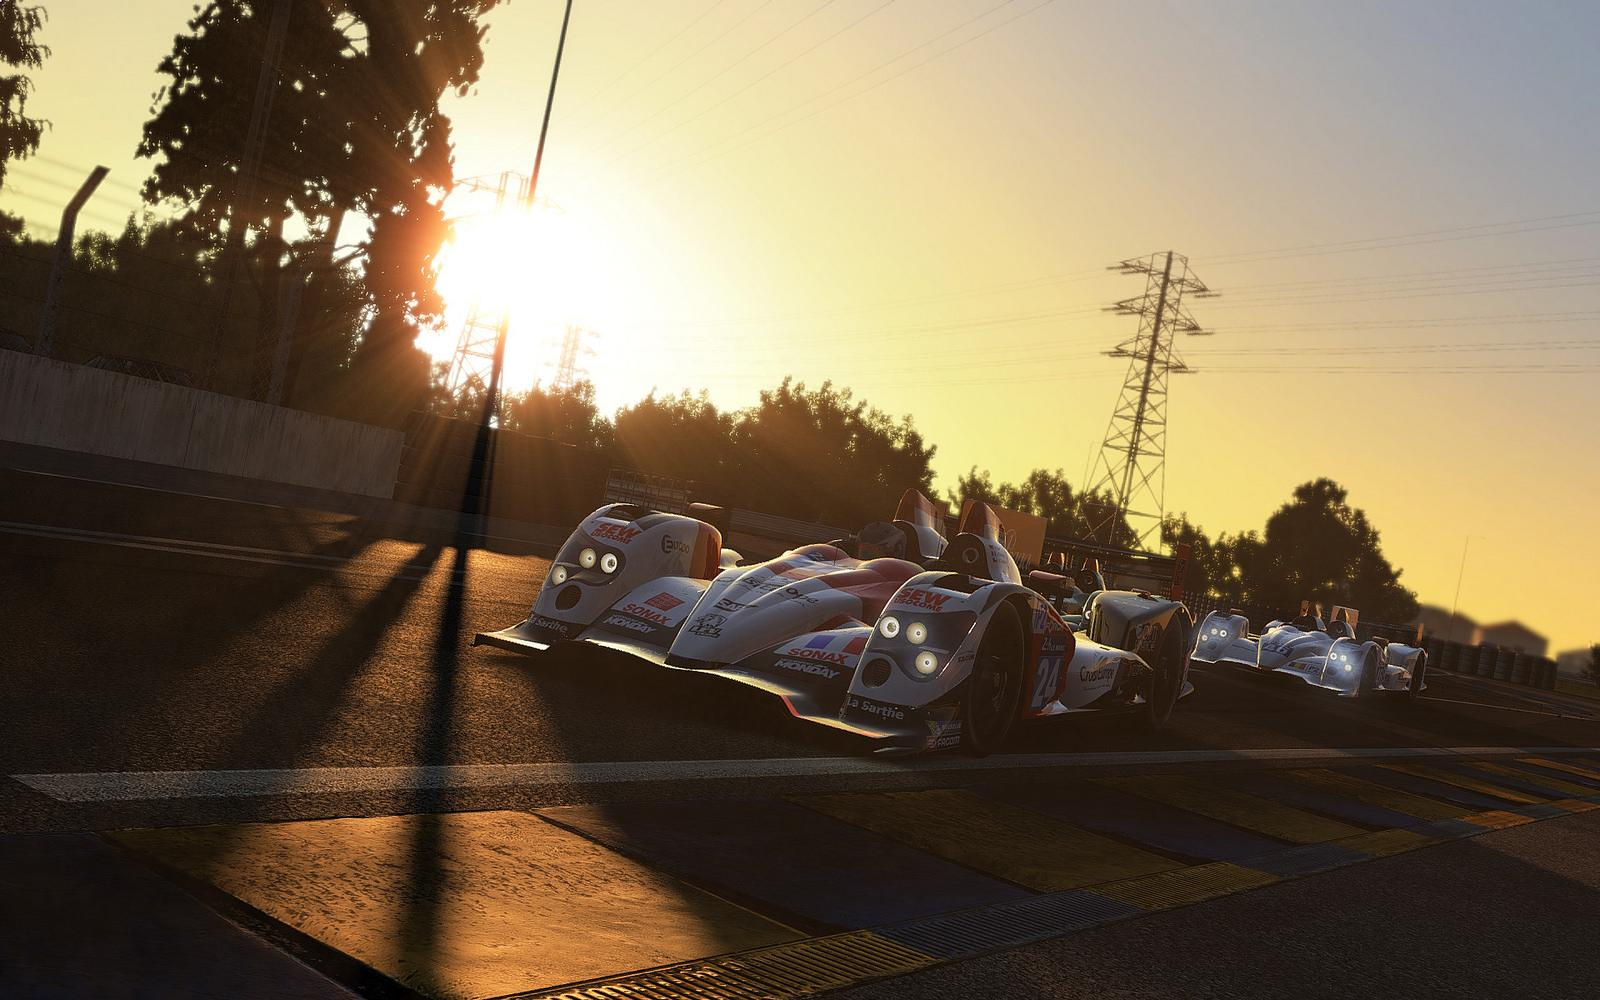 The most gorgeous racing game we've ever seen is finally launching on May 7th